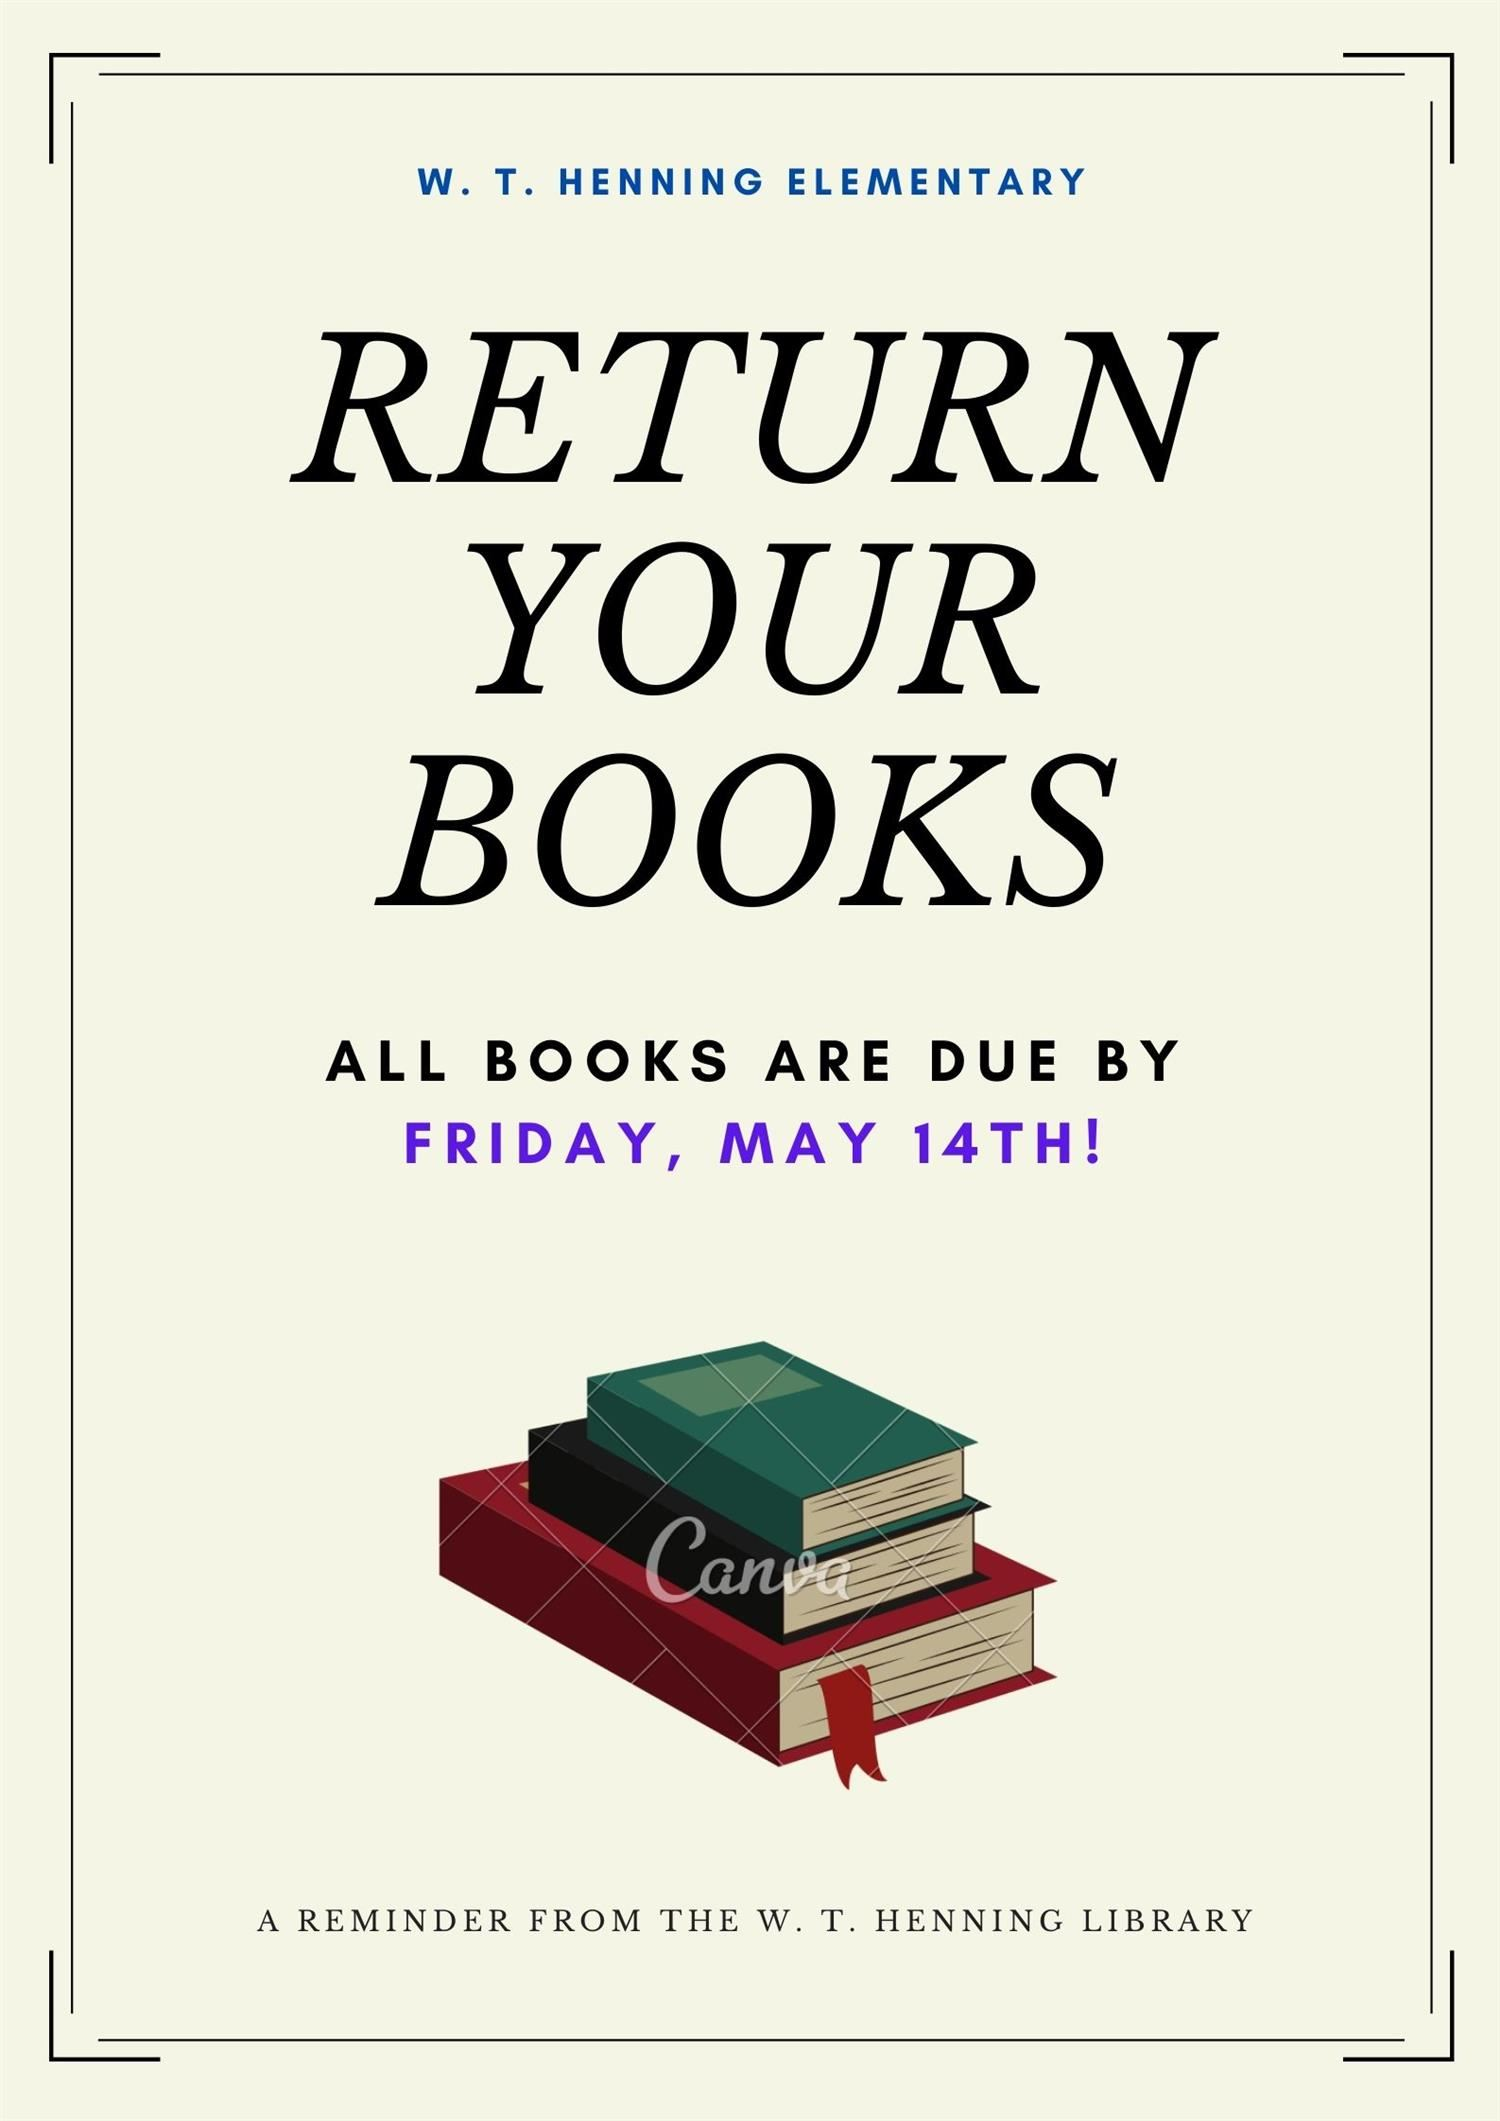 Library books are due Friday, May 14th.